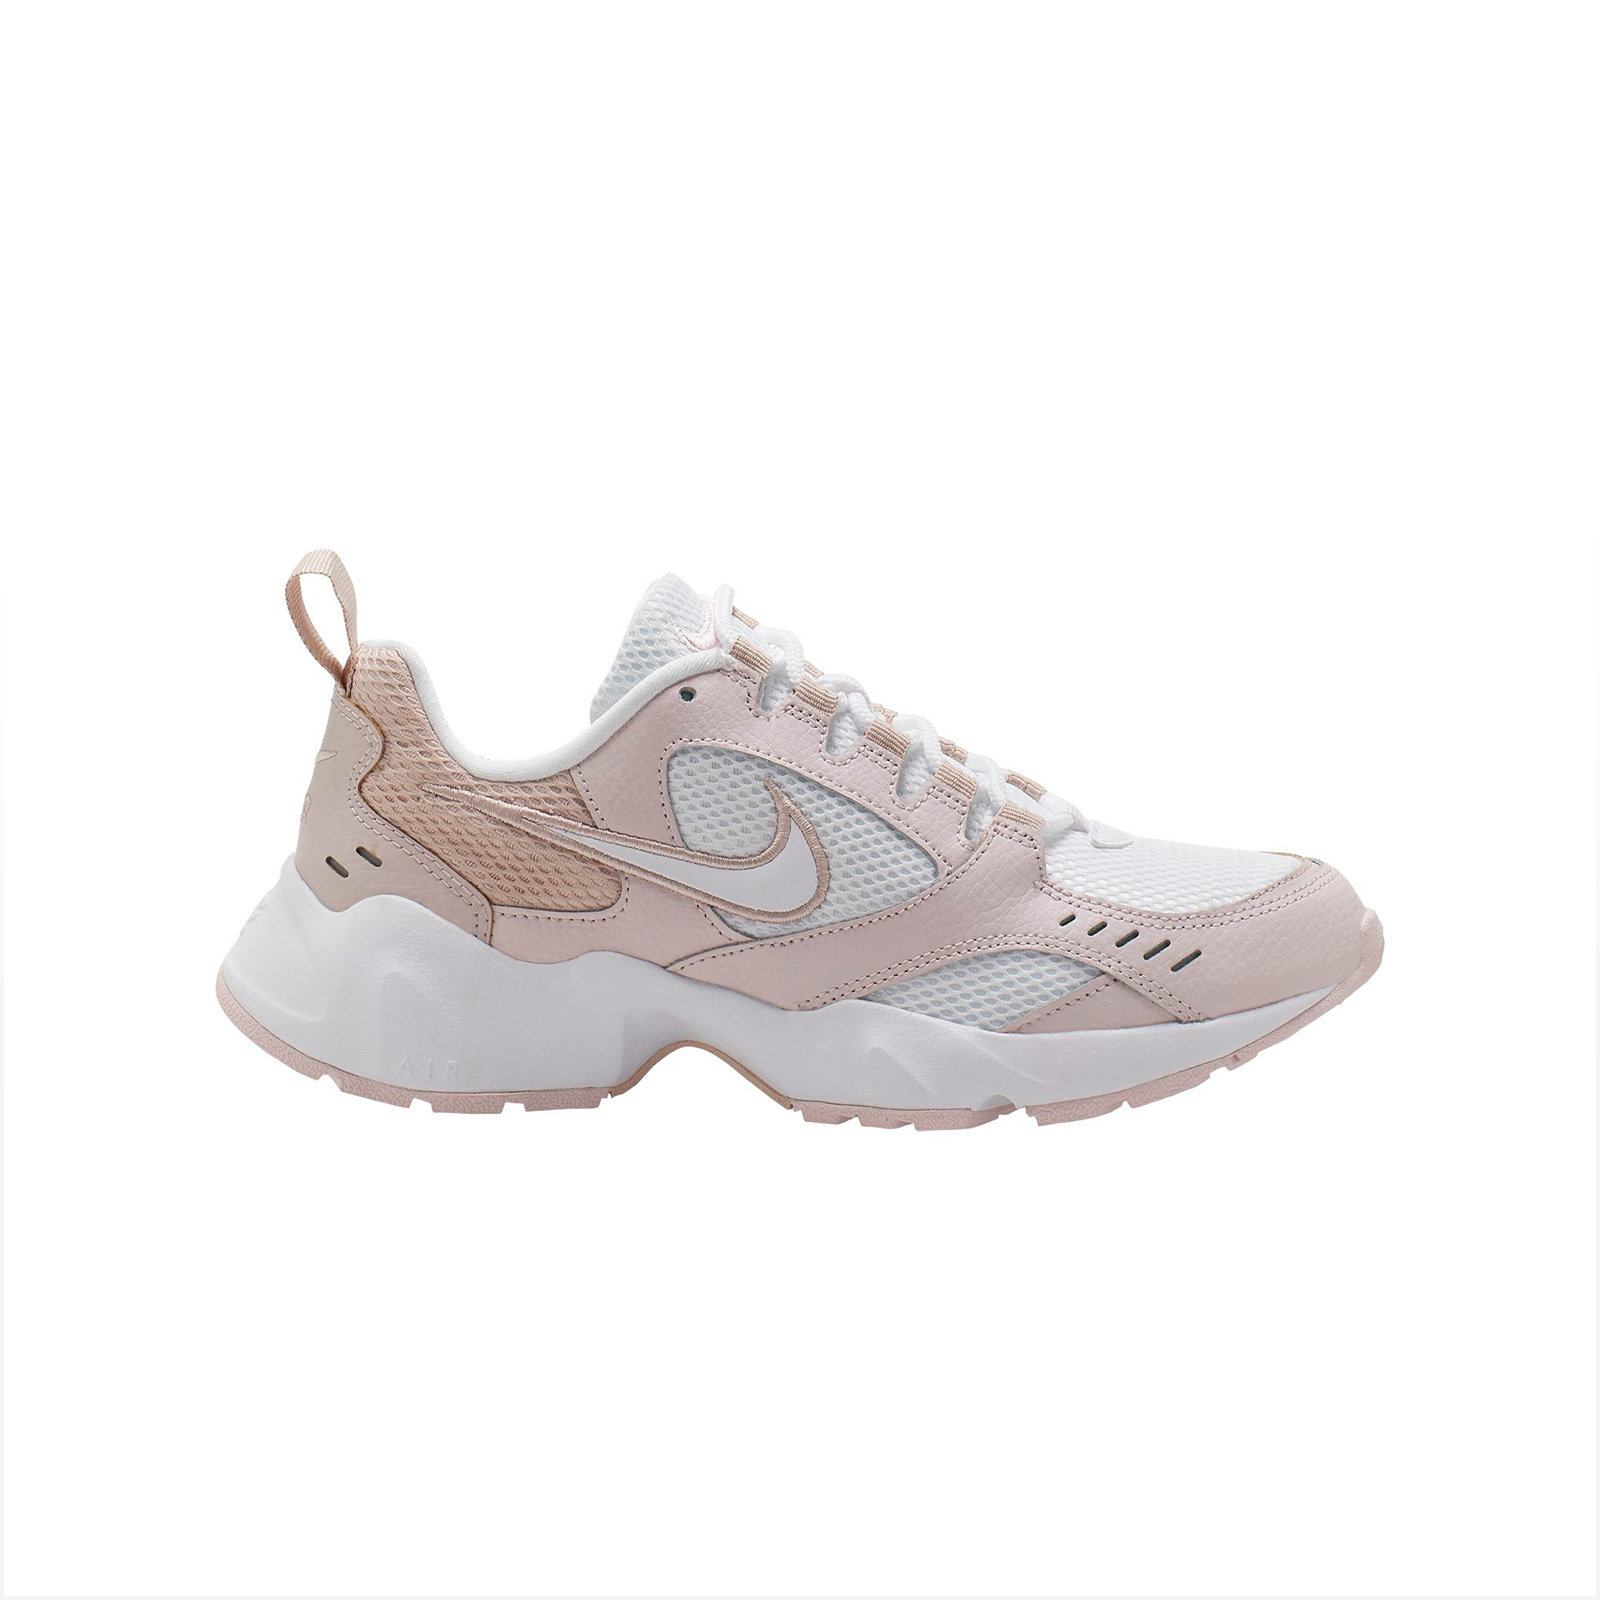 Nike - WMNS NIKE AIR HEIGHTS - BARELY ROSE/WHITE